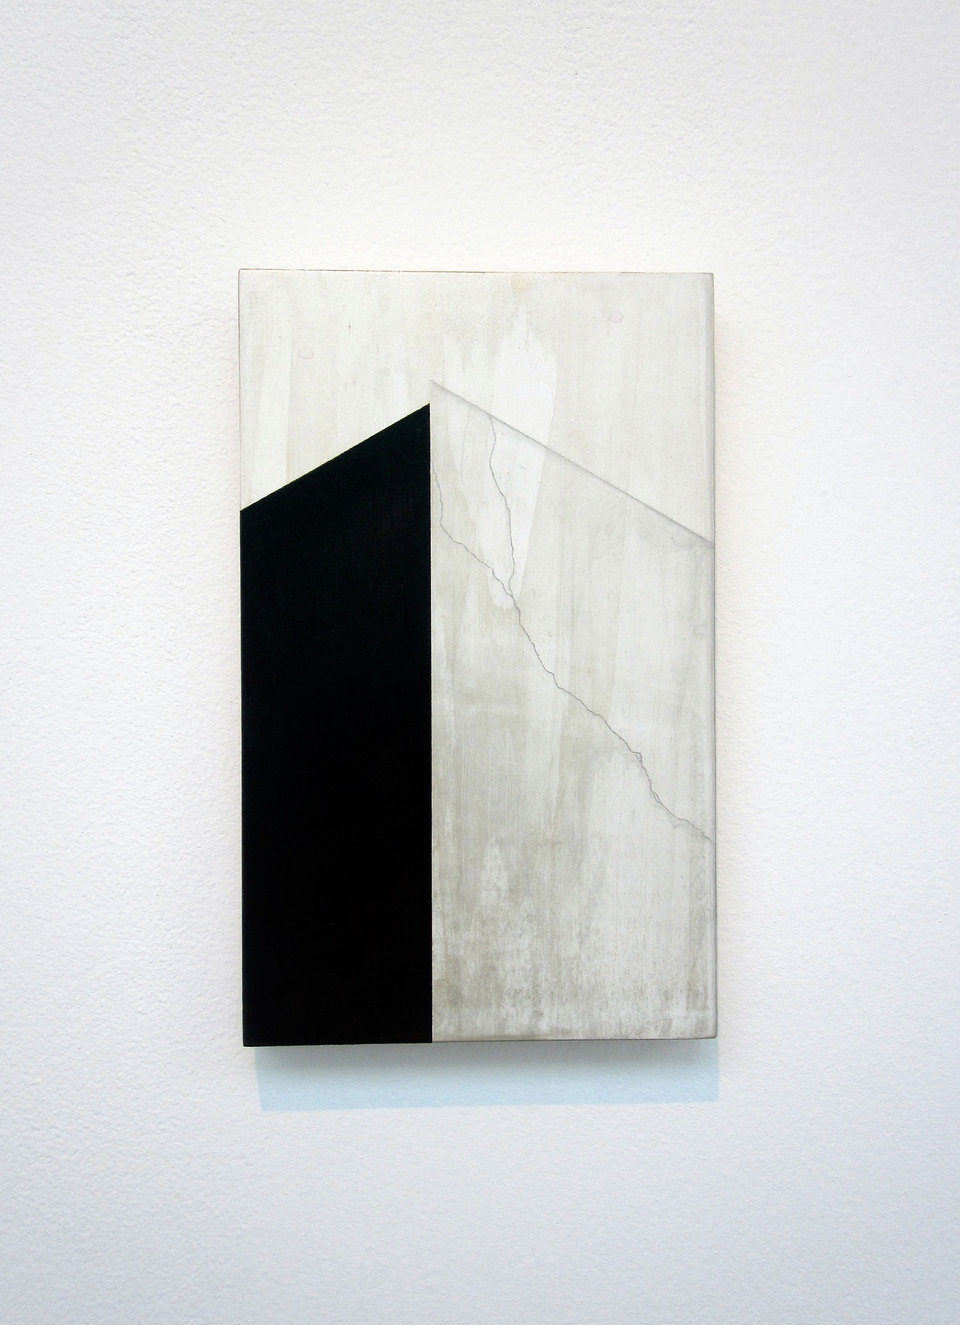 Andy Jackson, Junction (Infinity), 2010, Acrylic and Metallic Acrylic on Board, (h.800mm x w.500mm), Cell Project Space